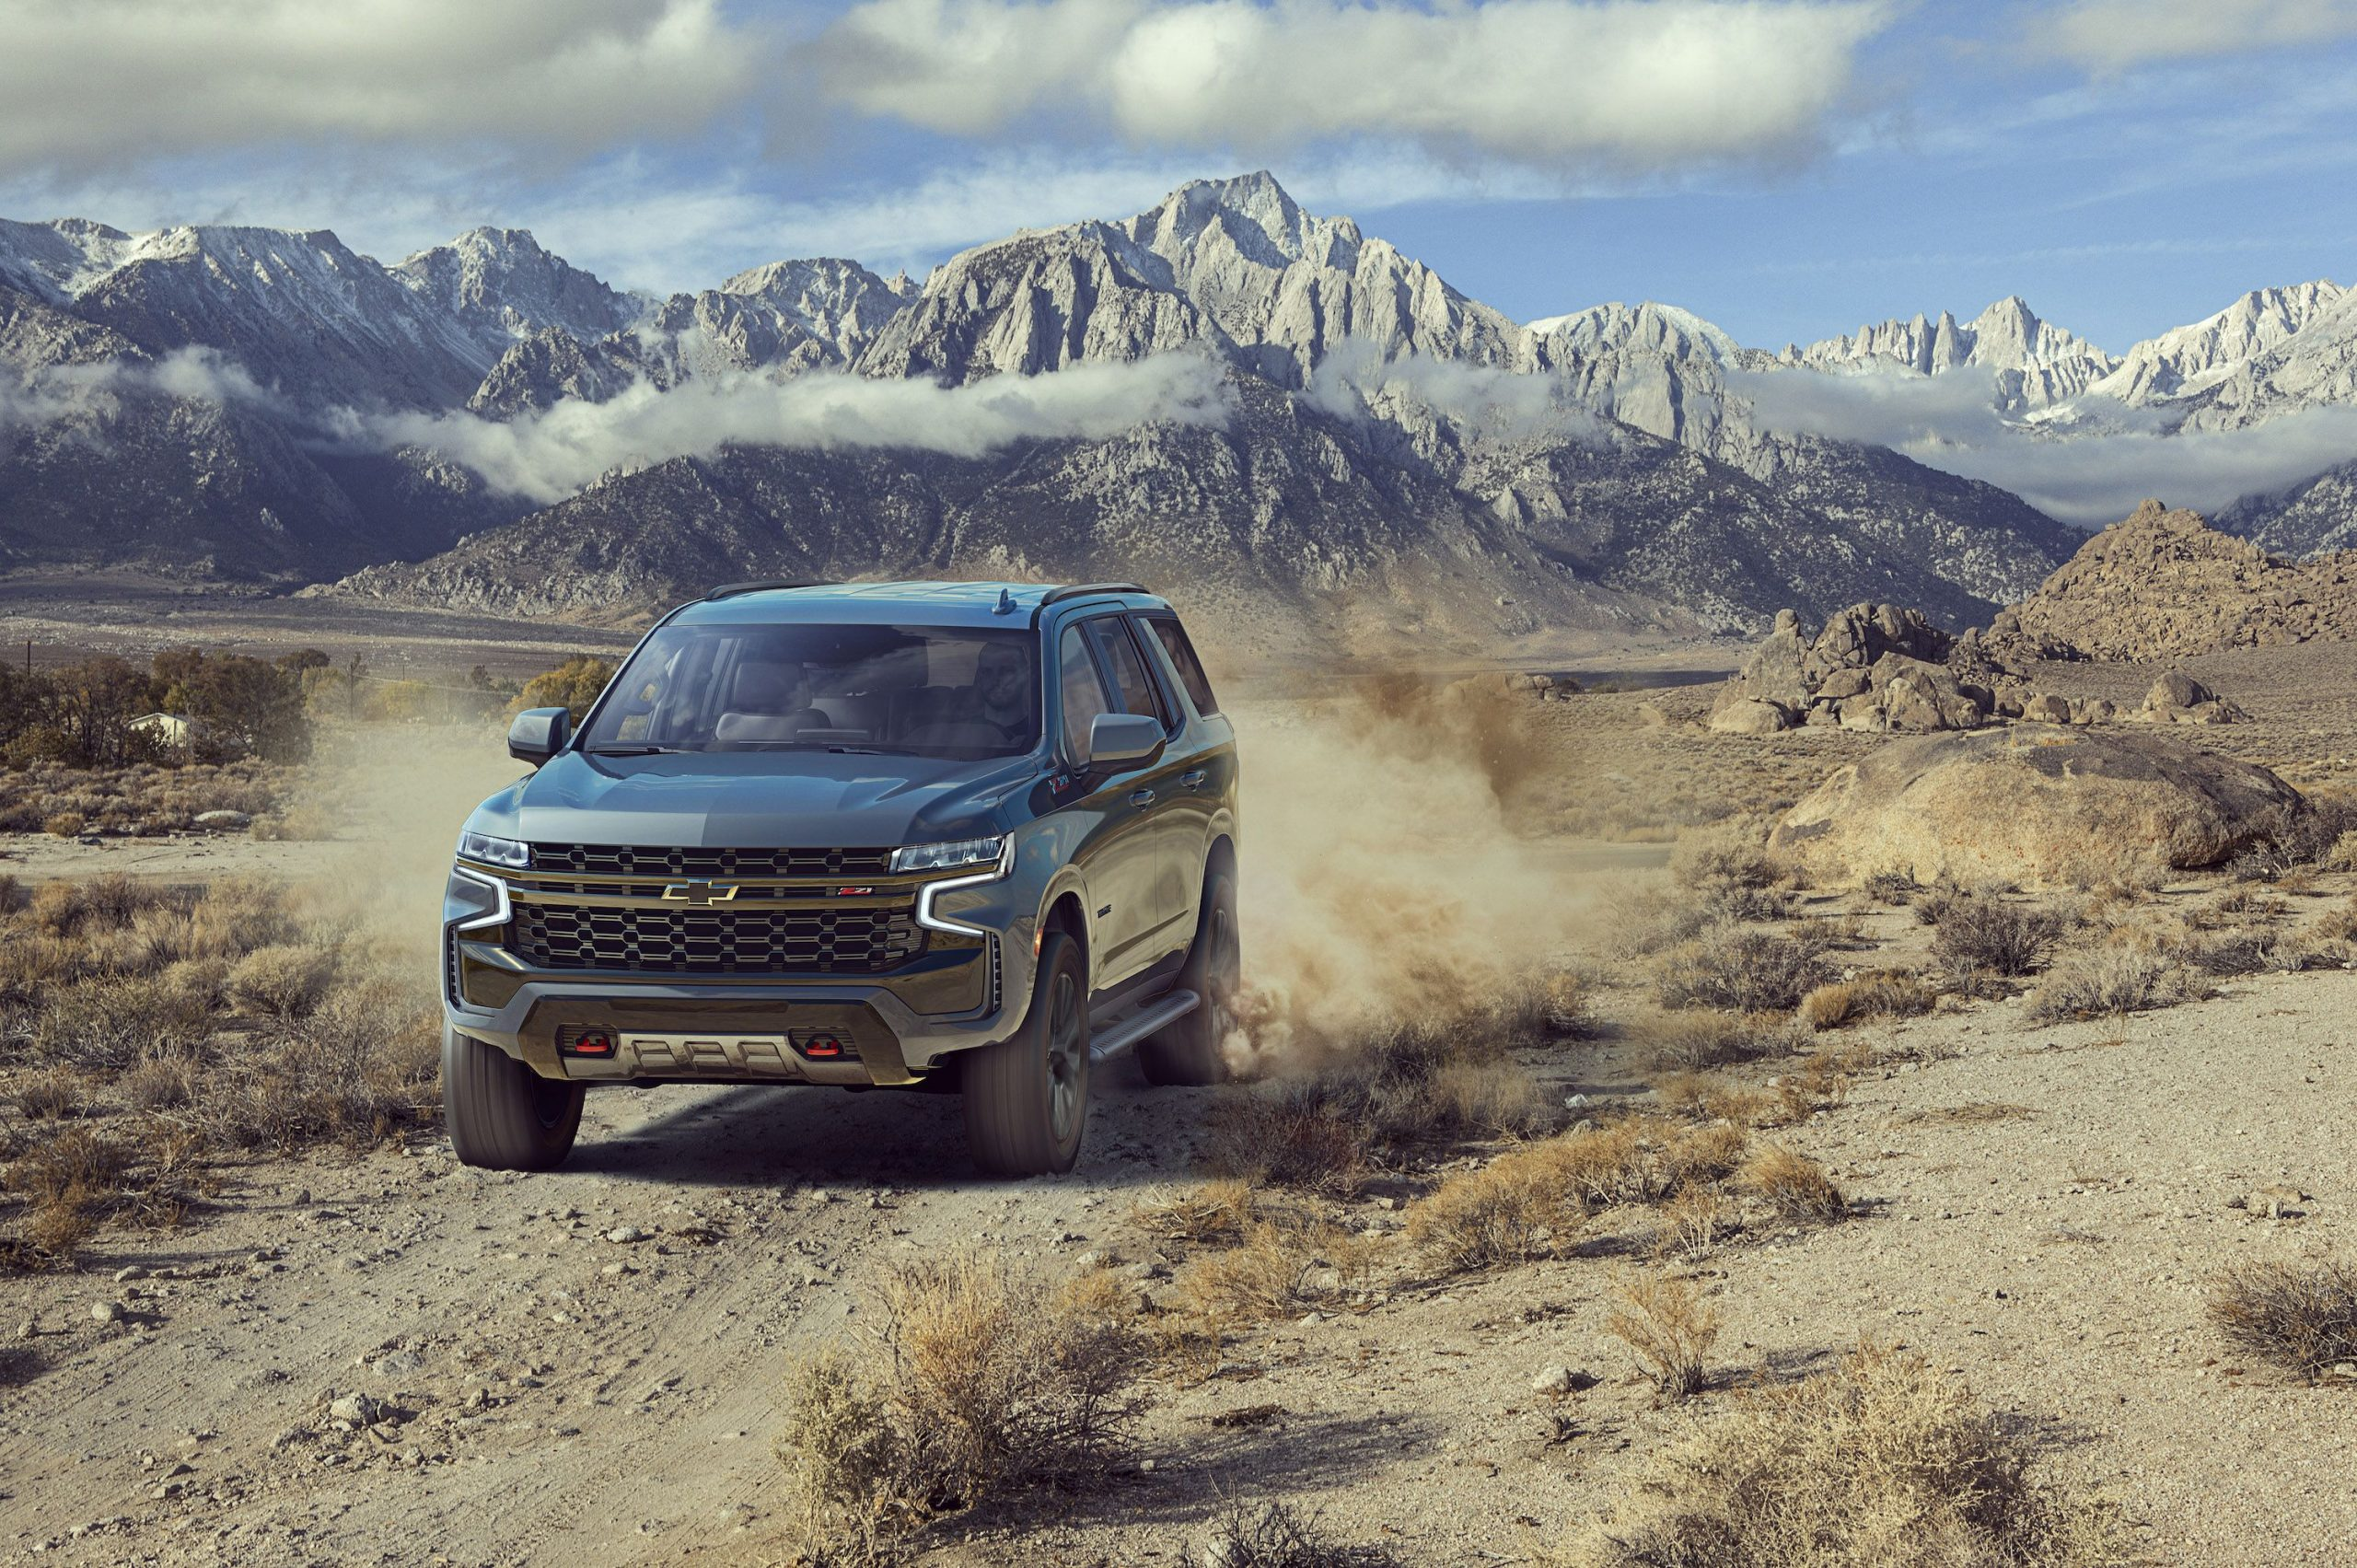 2021 Chevrolet Tahoe And Suburban Revealed With New Looks 2022 Chevrolet Tahoe Specifications, Trims, Towing